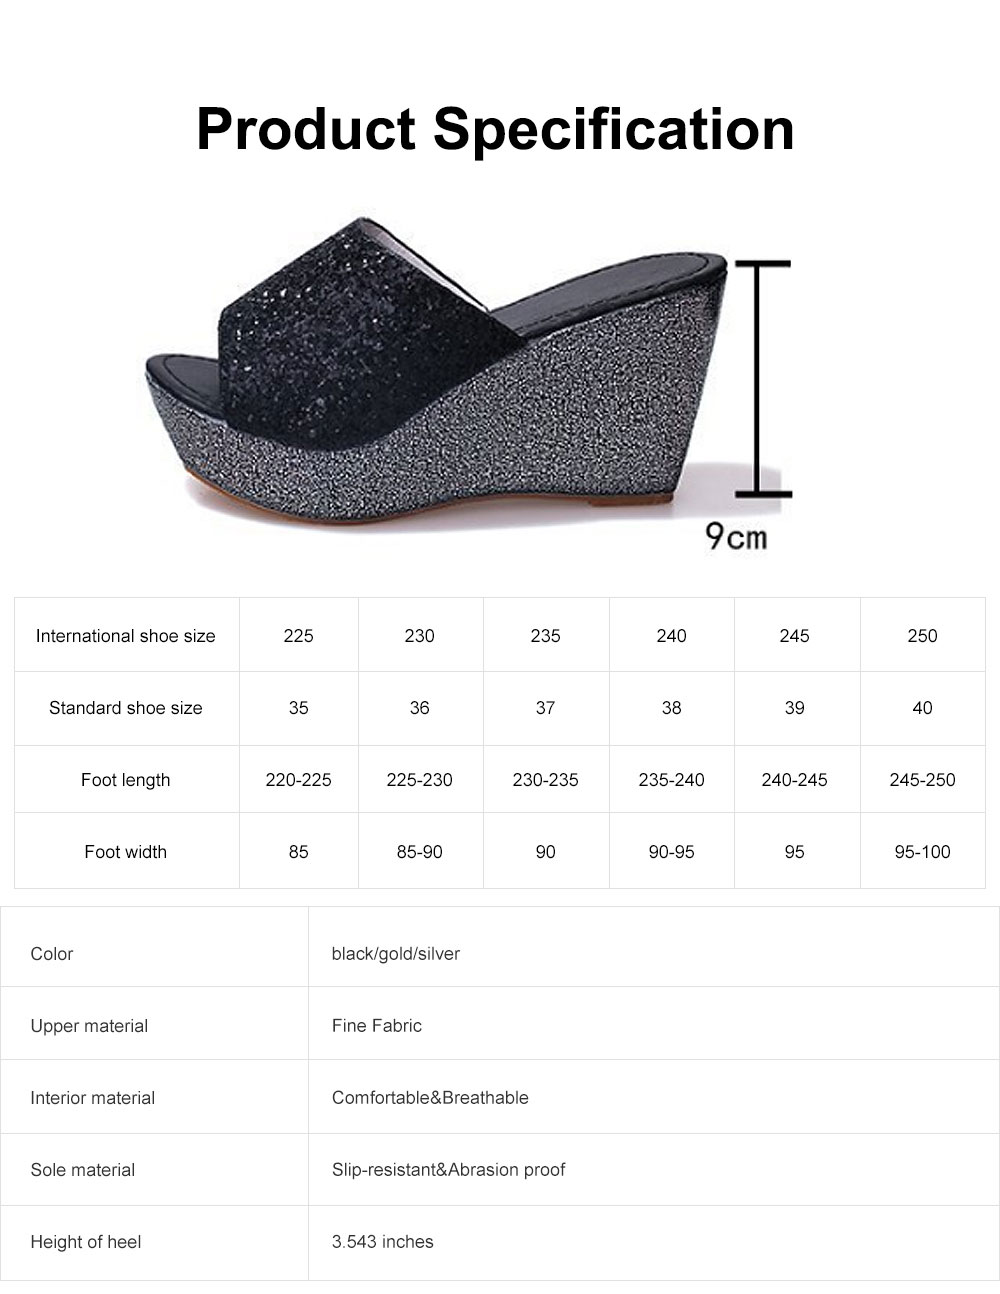 2019 Latest Platform Shoes in Vogue, Fashionable Glittering High Quality Wedge Heel Sandals with Tinsel 6